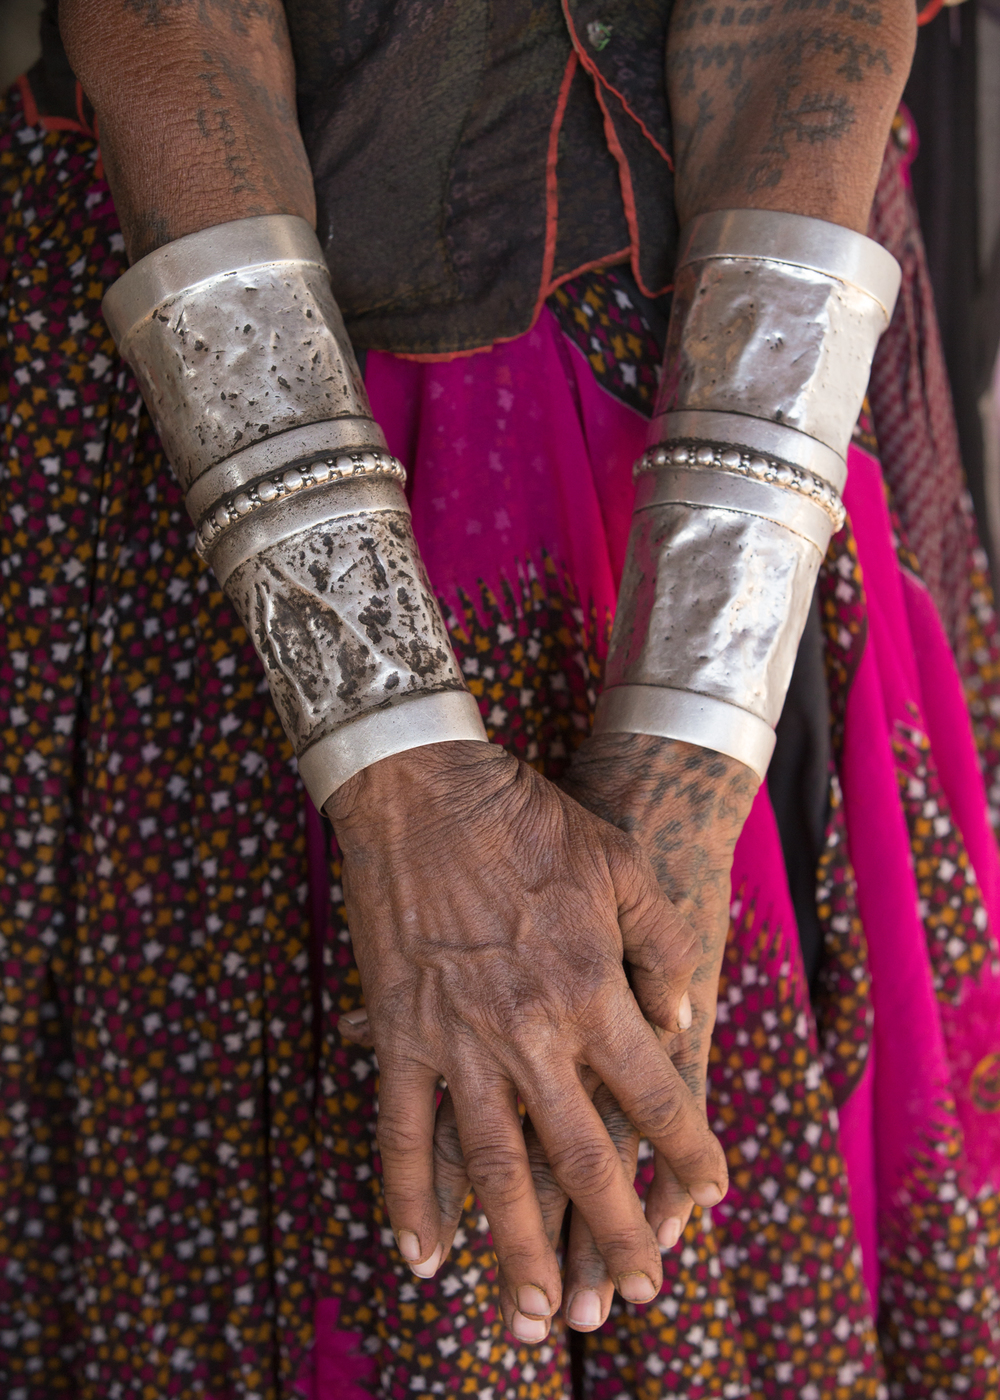 Leeloo, a village lady from near Zainabad comes from Rajasthan. These are her marriage bands.